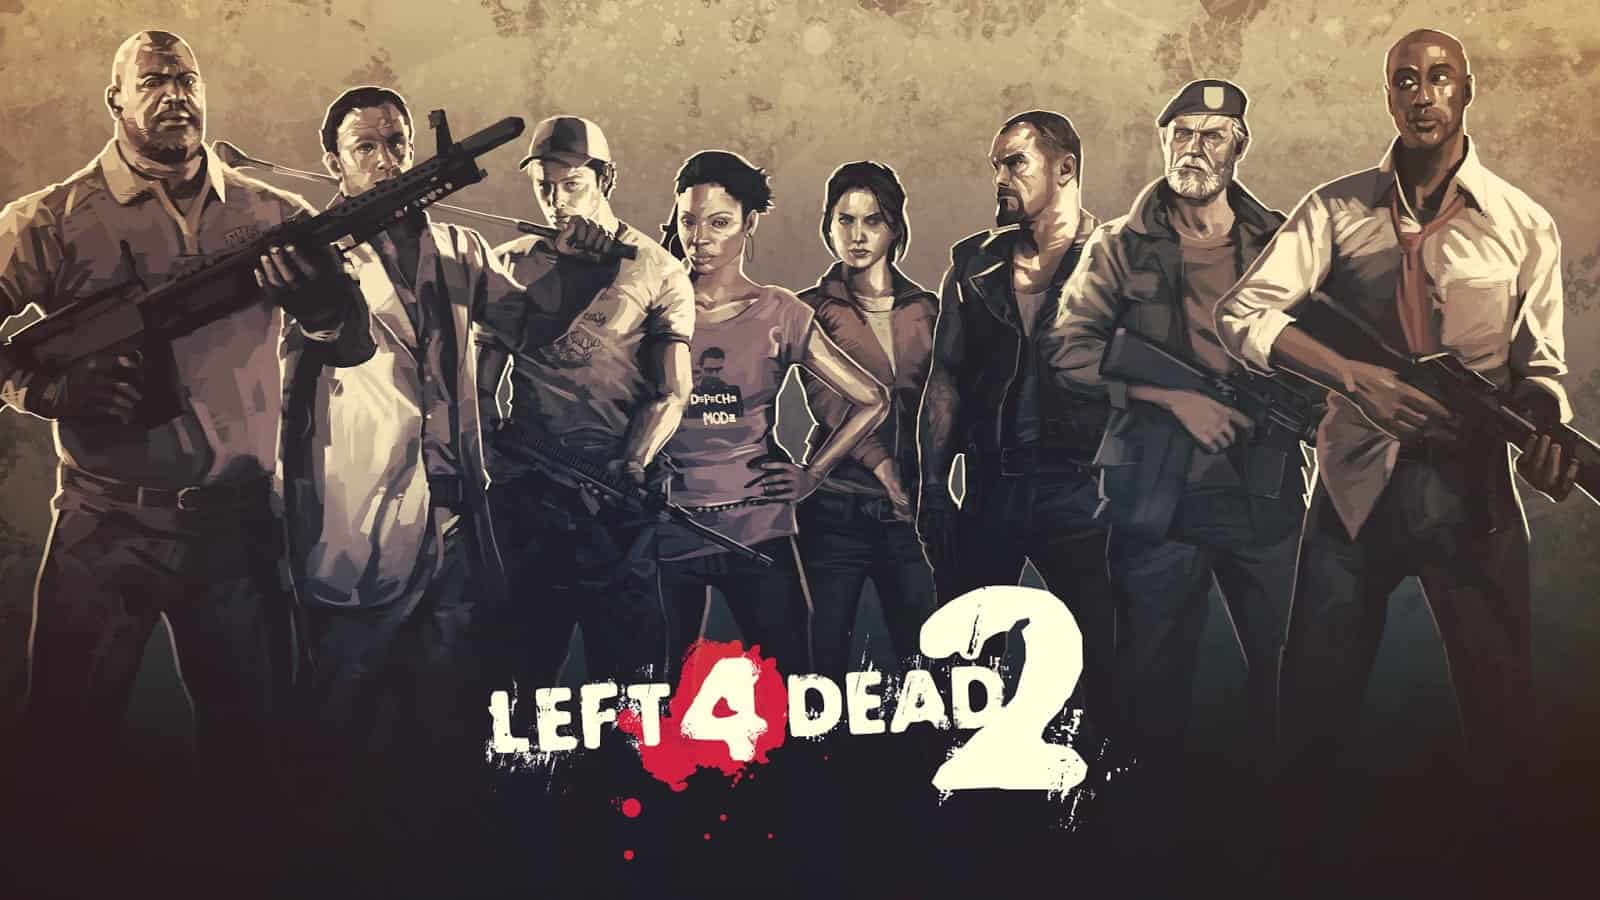 Left 4 Dead 2 game characters